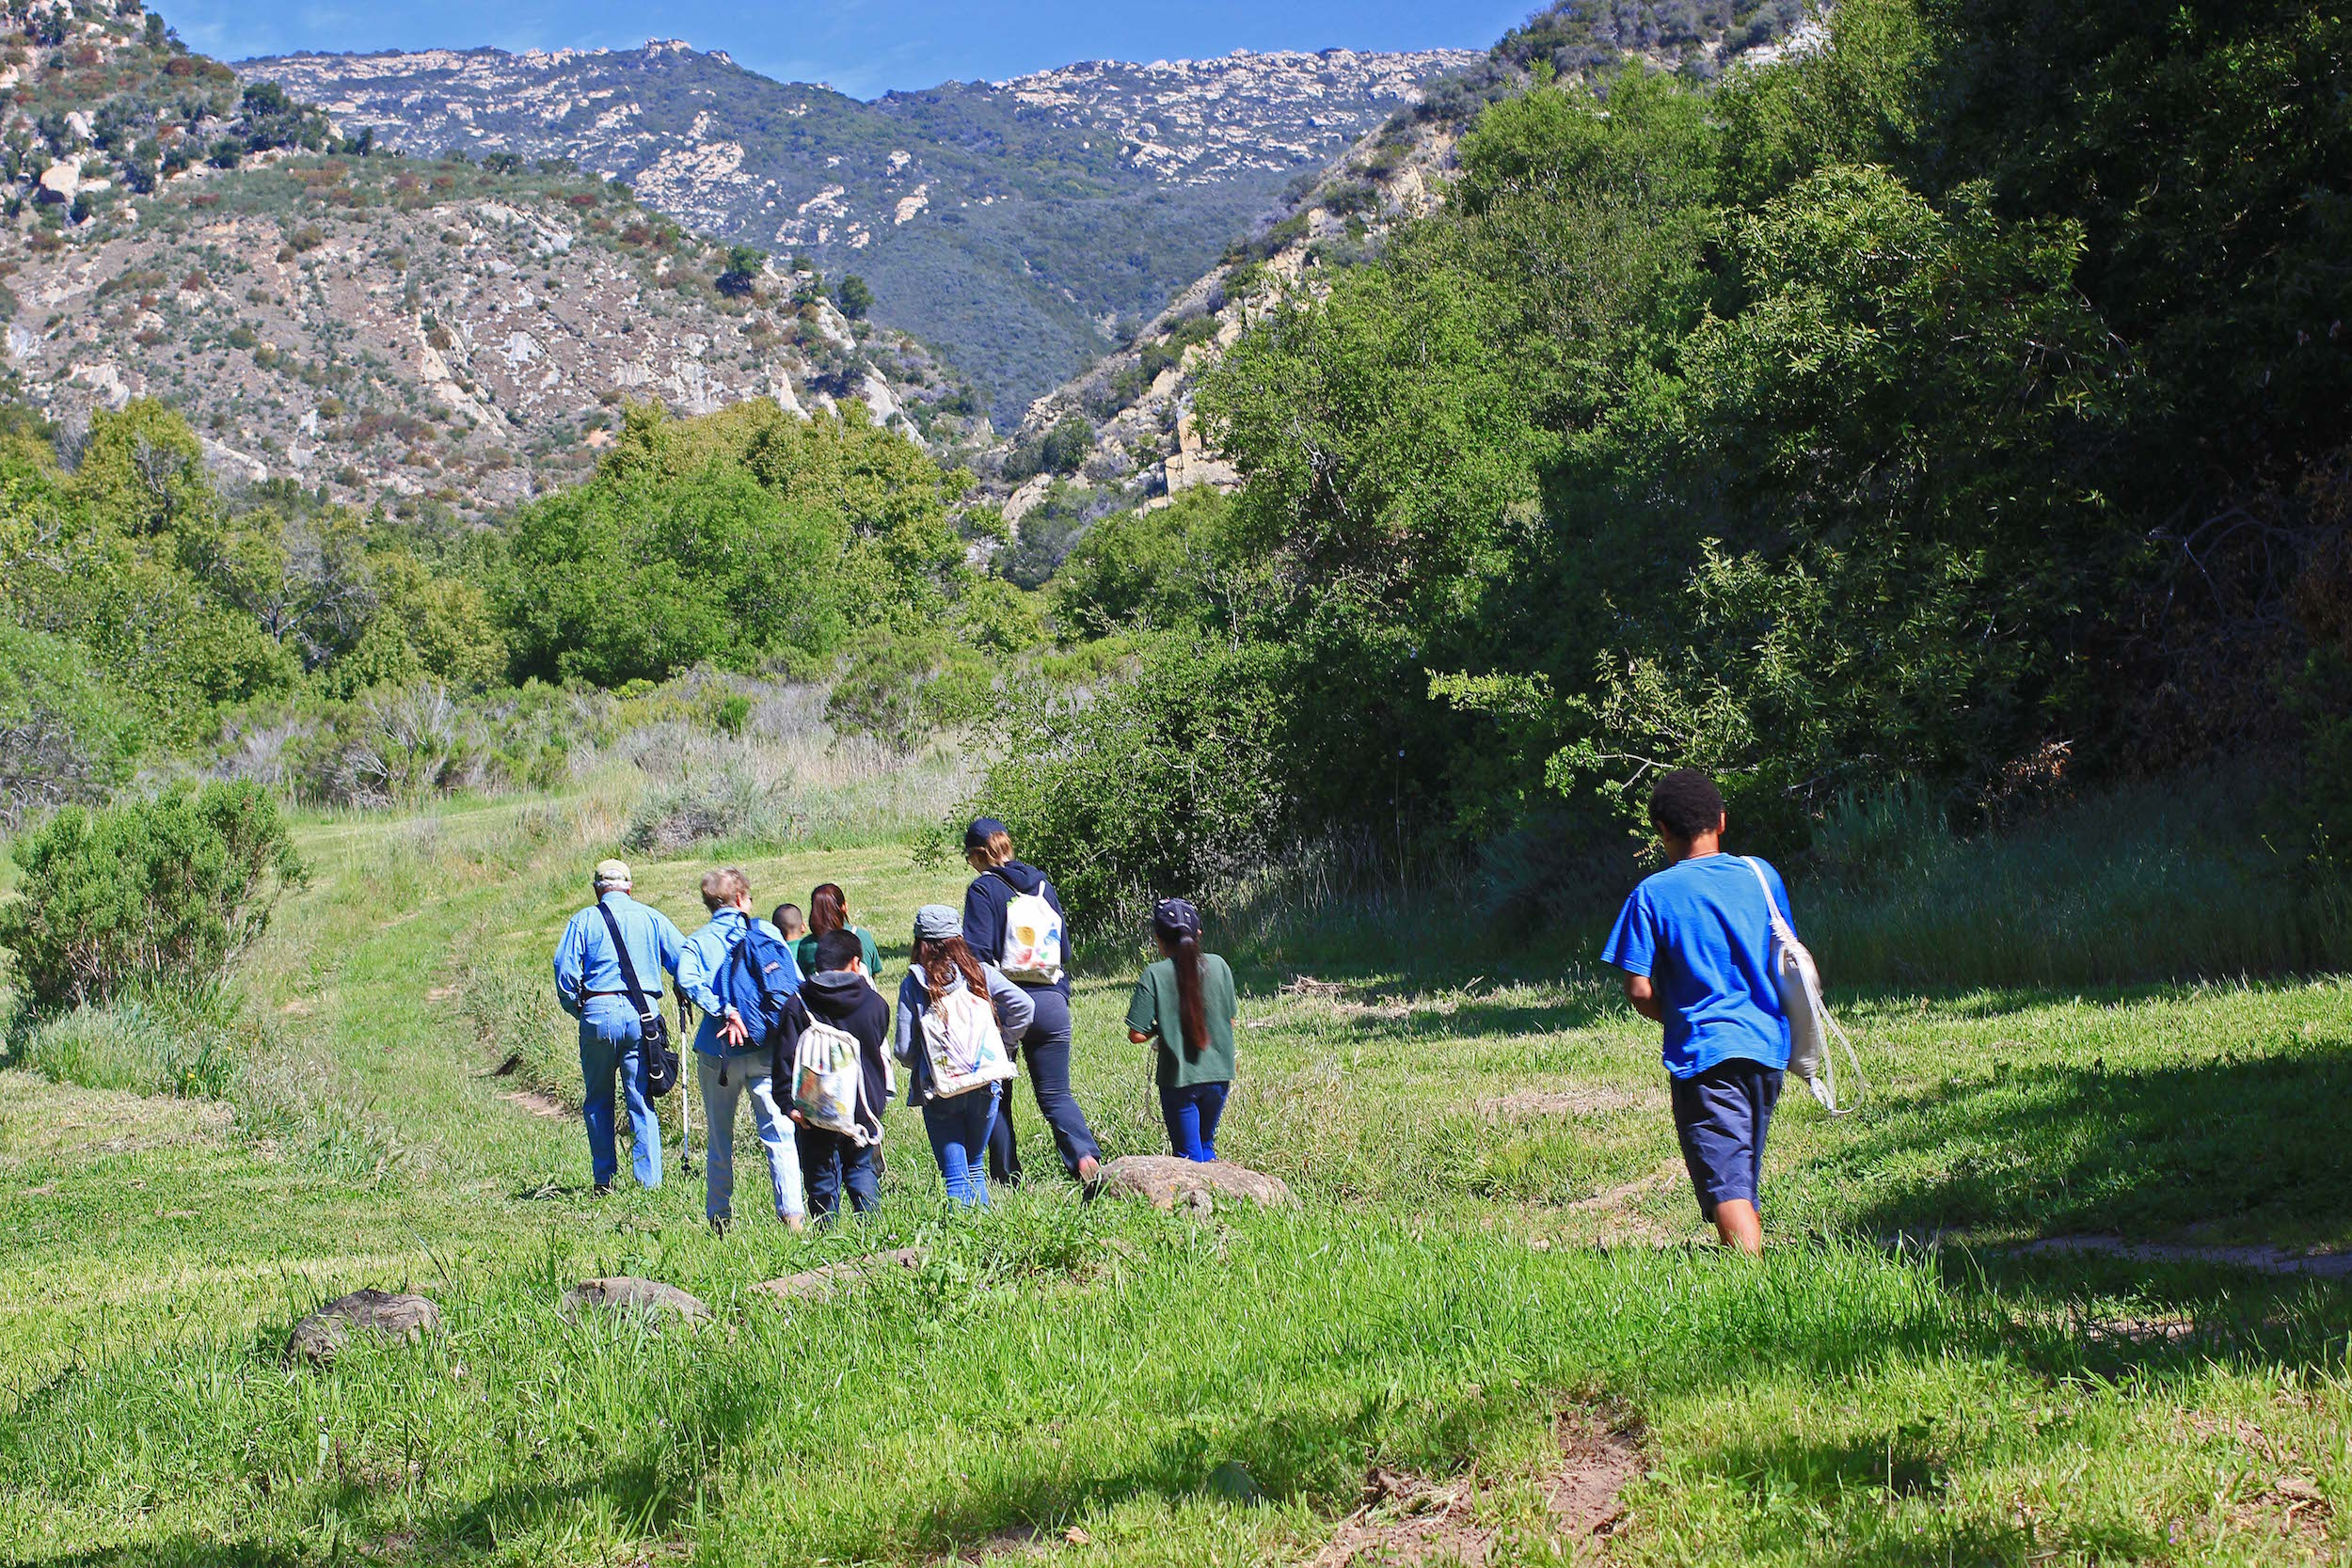 Arroyo Hondo hike with kids x Sally Isaacson